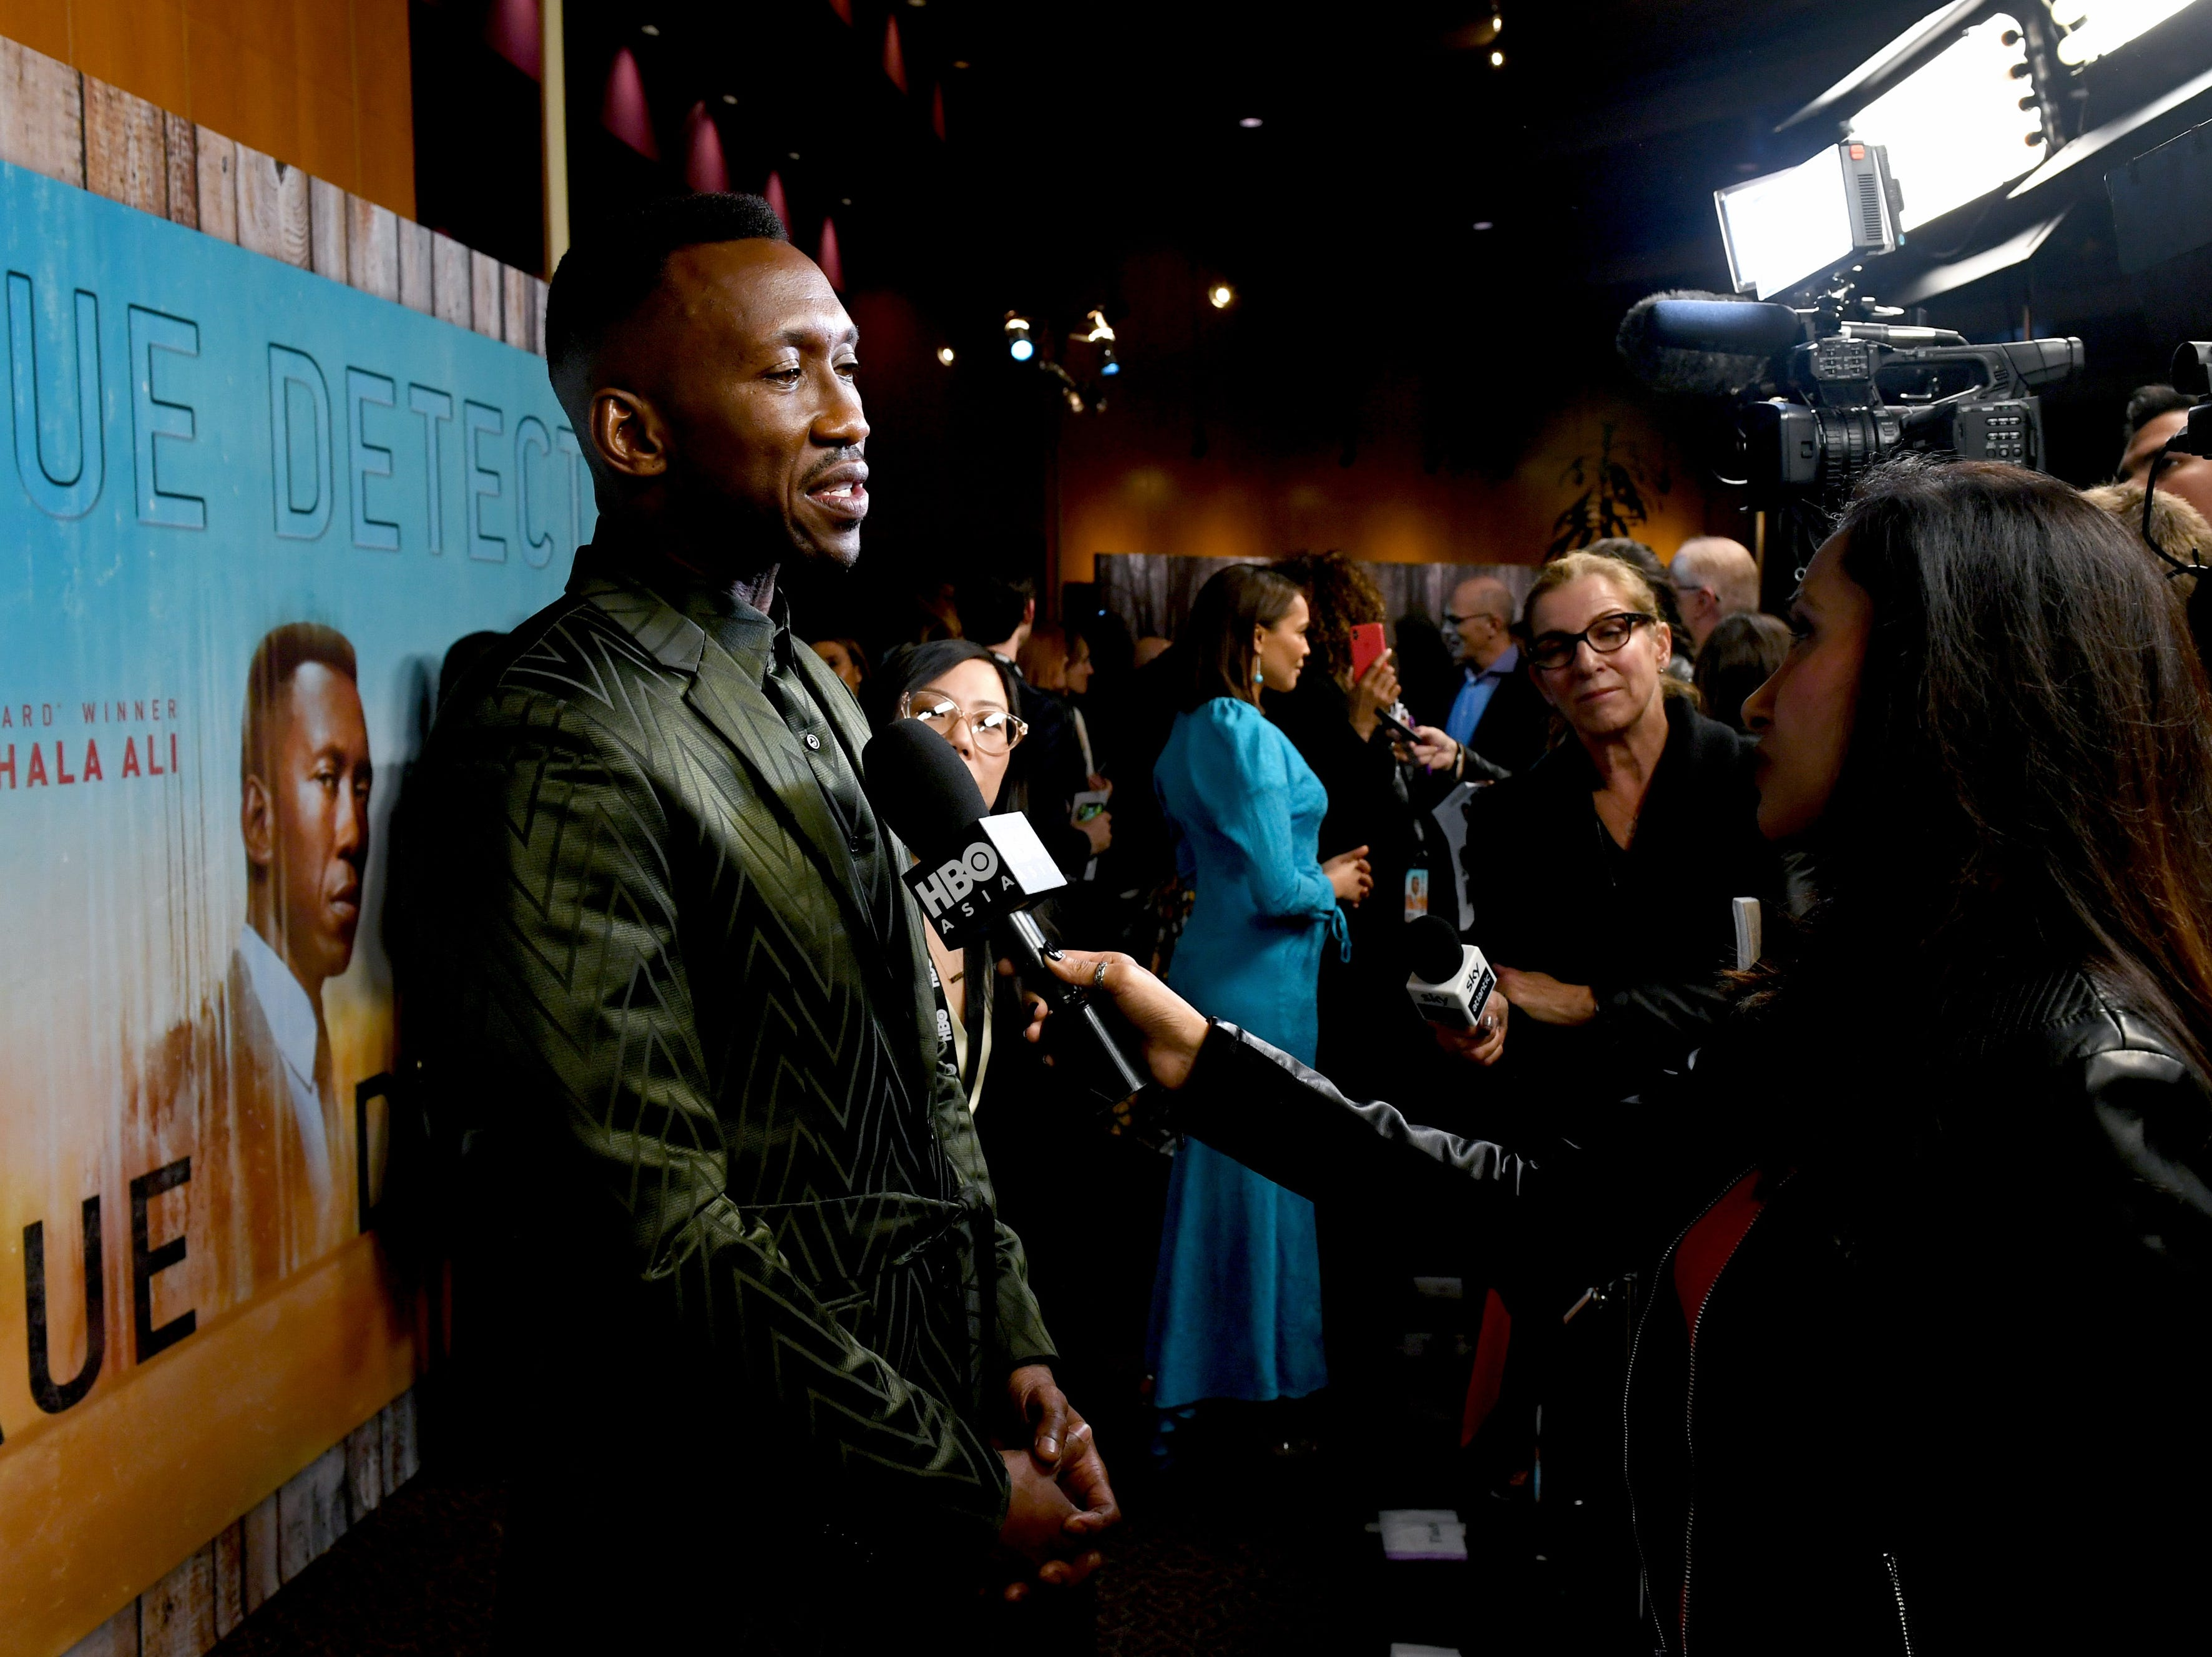 LOS ANGELES, CA - JANUARY 10:  Mahershala Ali attends the premiere of HBO's 'True Detective' Season 3 at Directors Guild Of America on January 10, 2019 in Los Angeles, California.  (Photo by Kevin Winter/Getty Images) ORG XMIT: 775273151 ORIG FILE ID: 1080611830